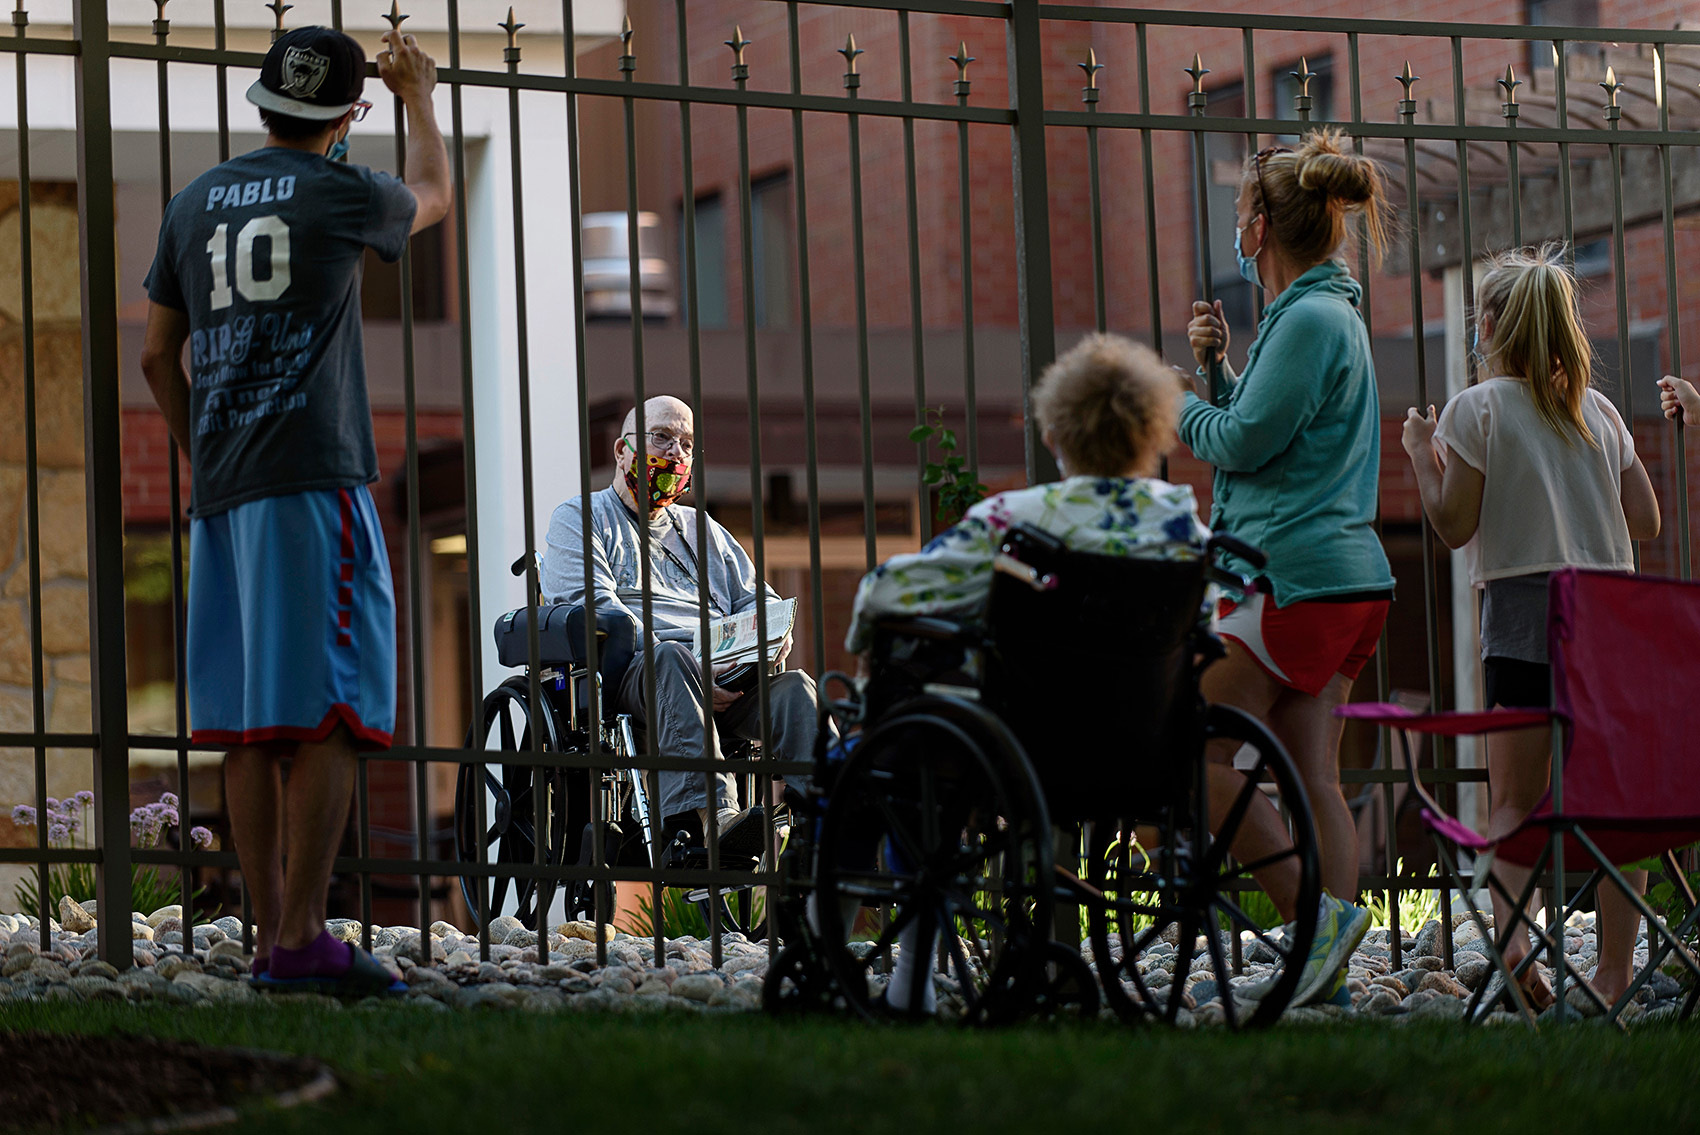 Photo of relatives visiting a nursing home resident taken by Fargo, North Dakota photojournalist Dan Koeck.